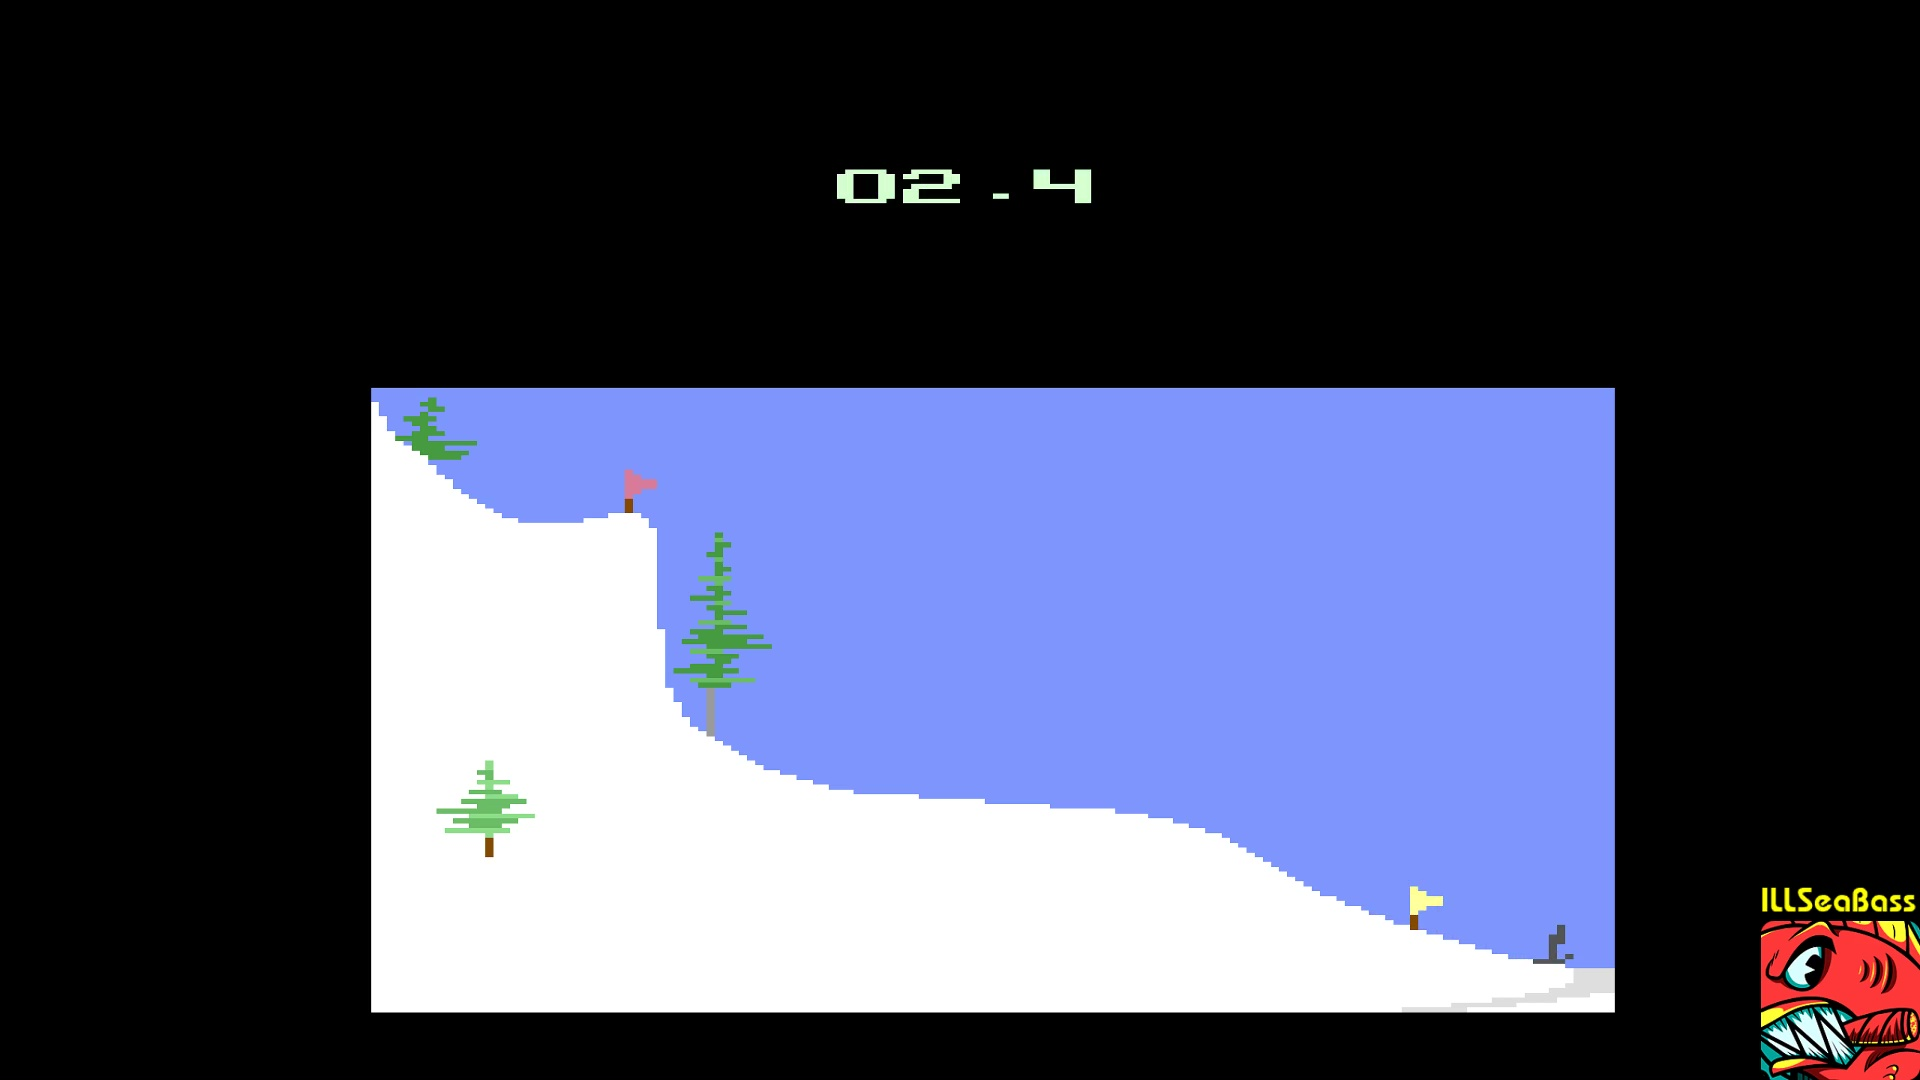 ILLSeaBass: Winter Games: Hot Dog (Atari 2600 Emulated) 24 points on 2017-12-29 12:37:41